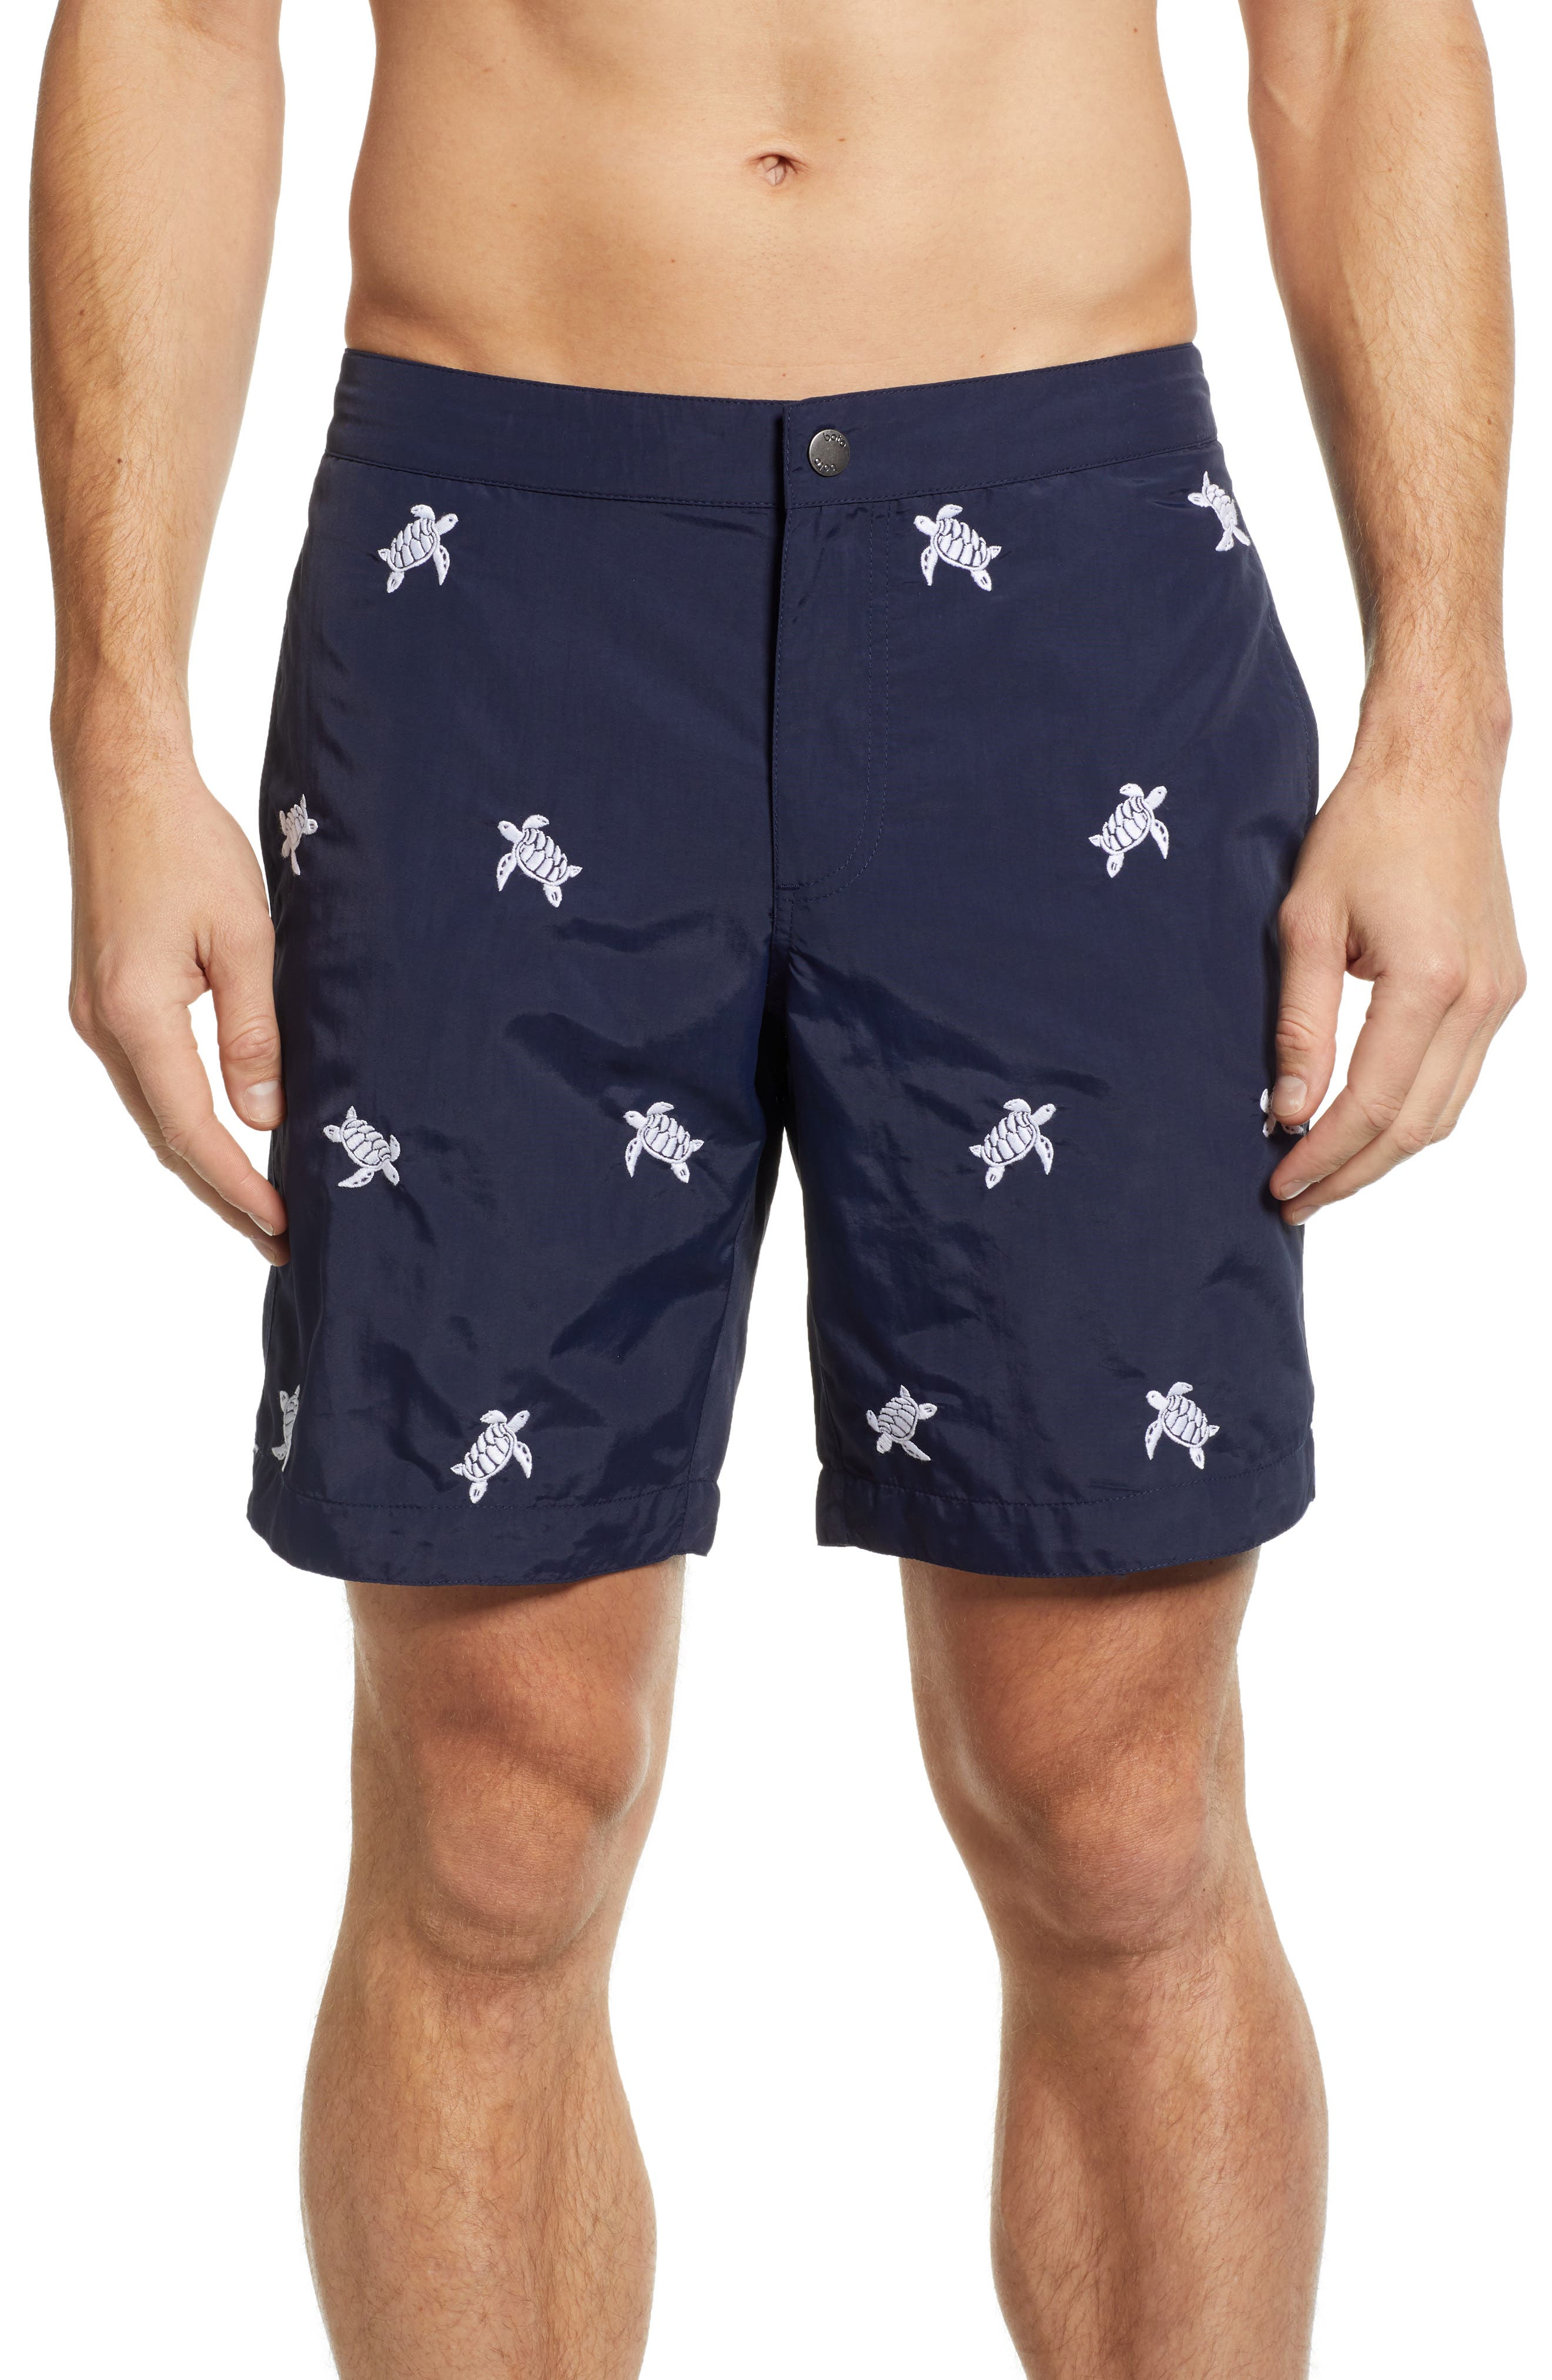 Aruba Embroidered 8.5 Inch Swim Trunks,                             Main thumbnail 1, color,                             NAVY EMBROIDERED TURTLES